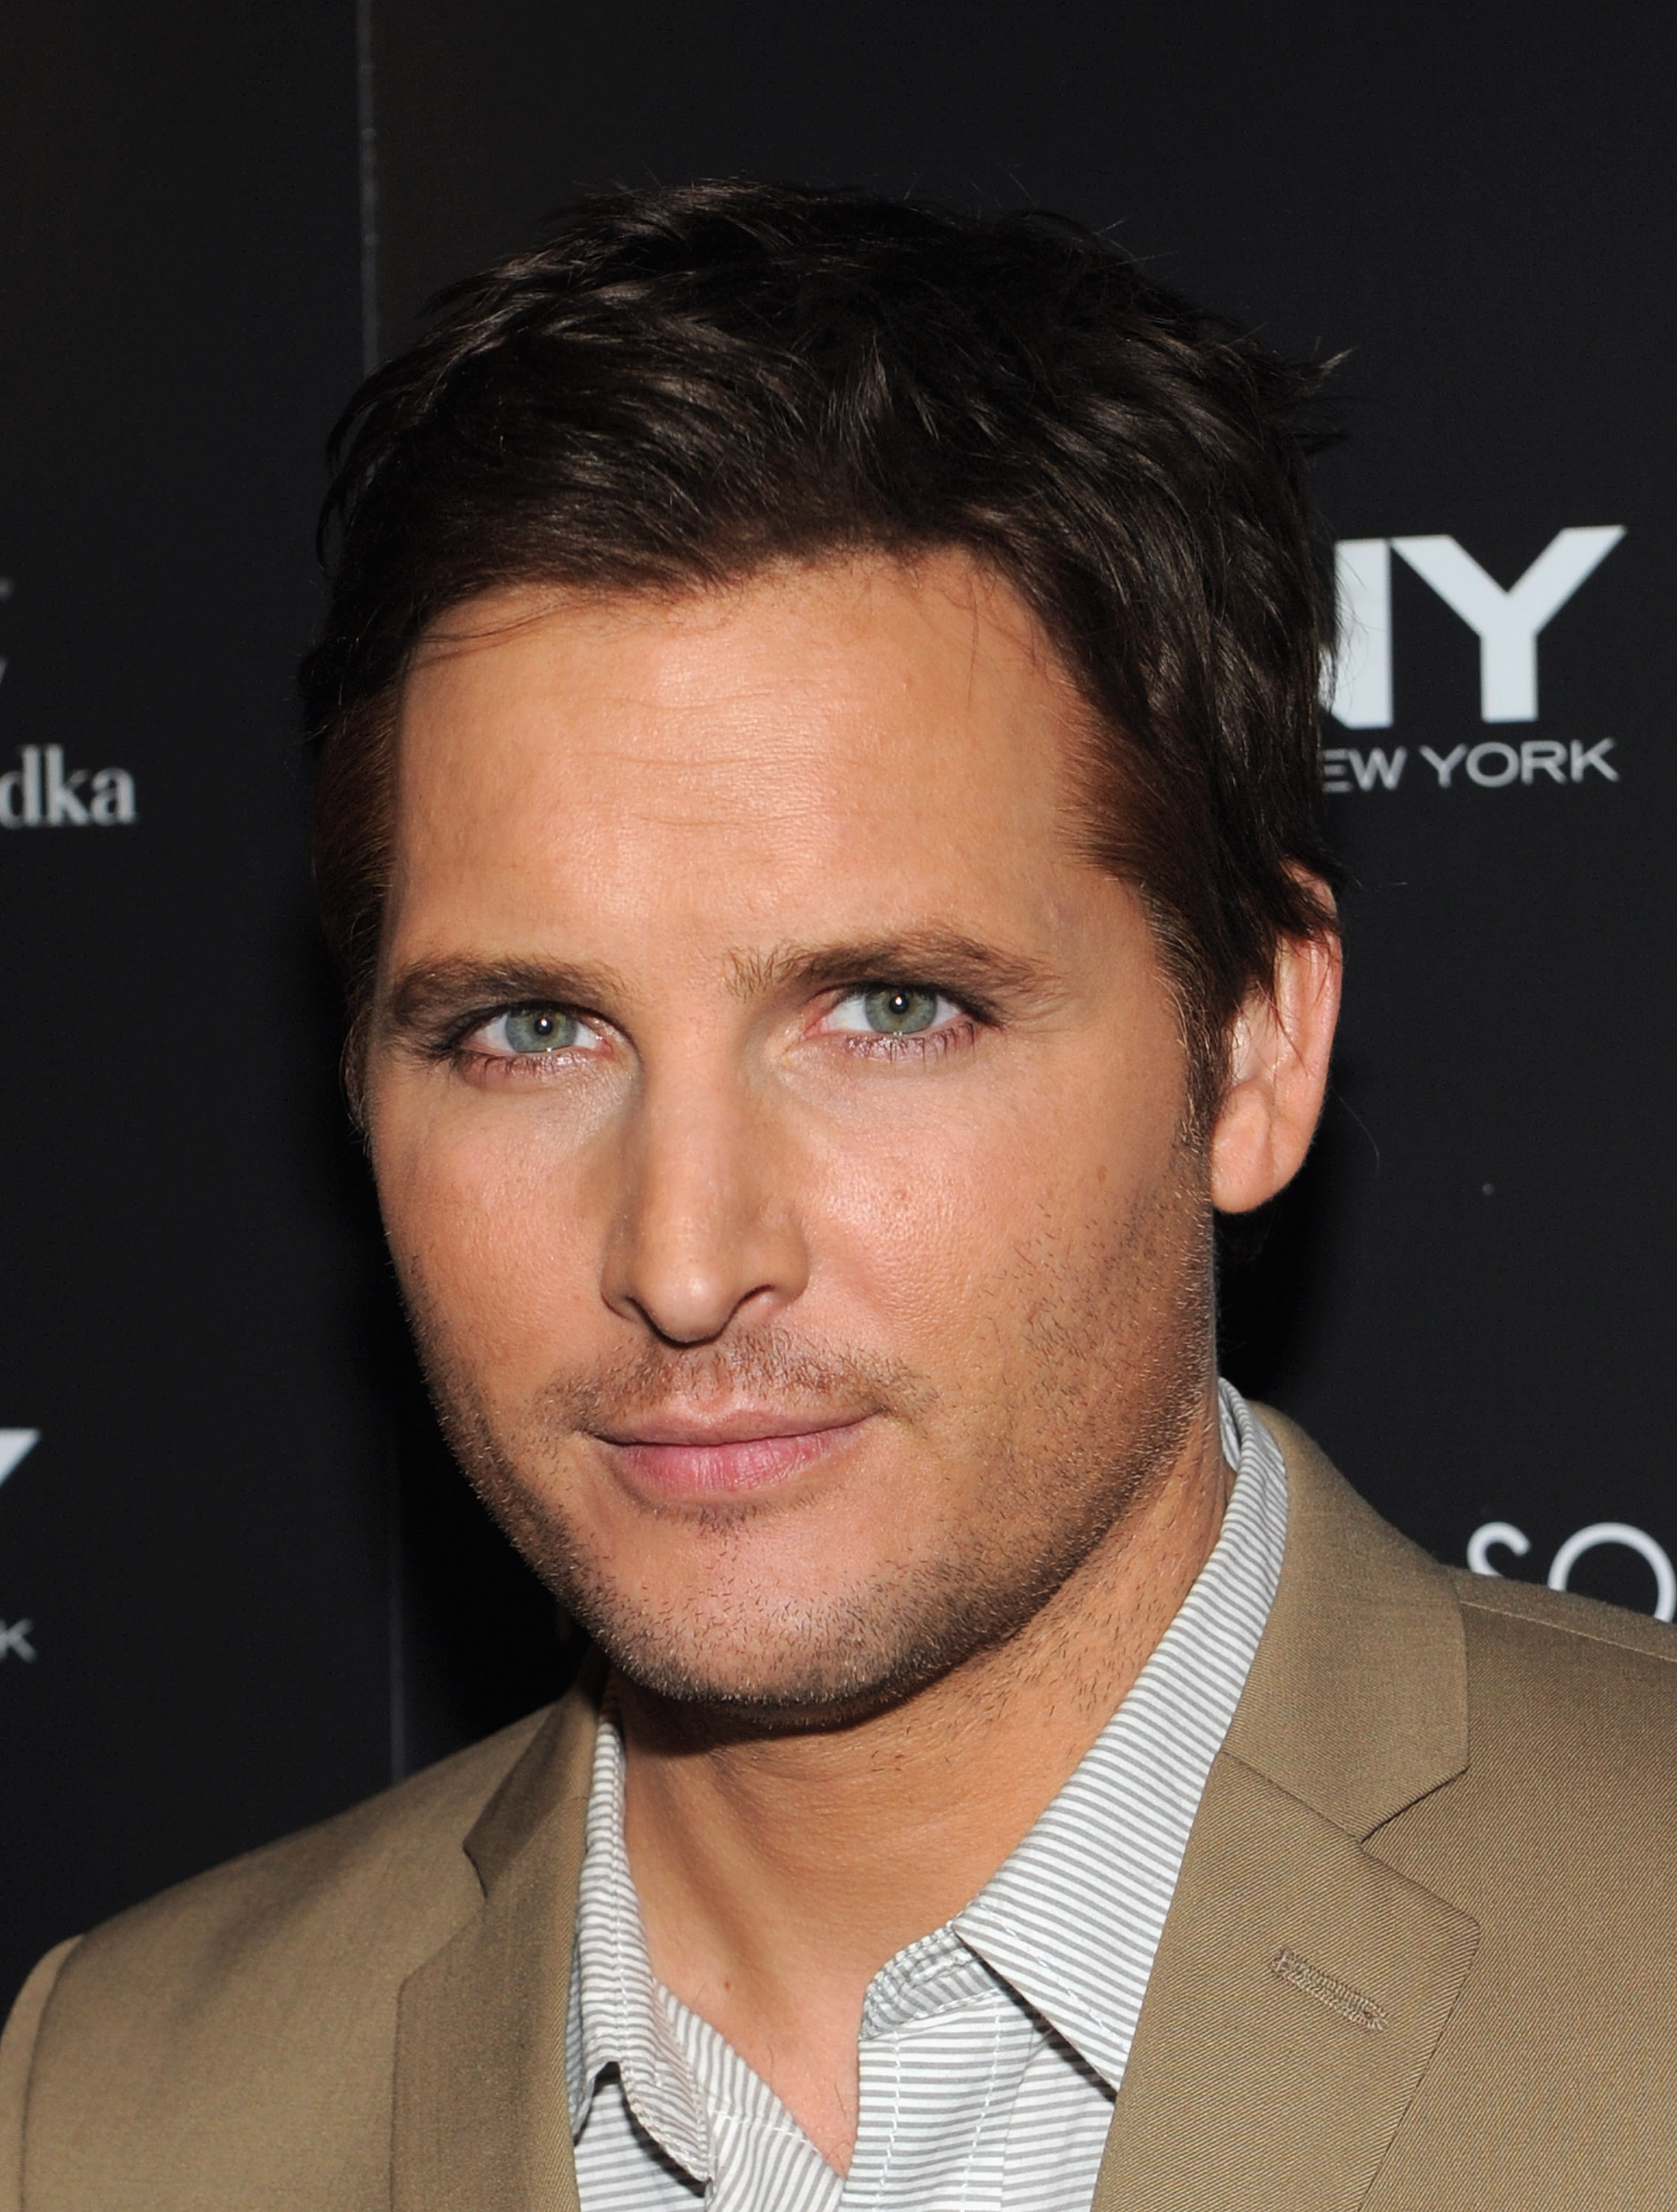 Peter Facinelli at a screening in NYC.